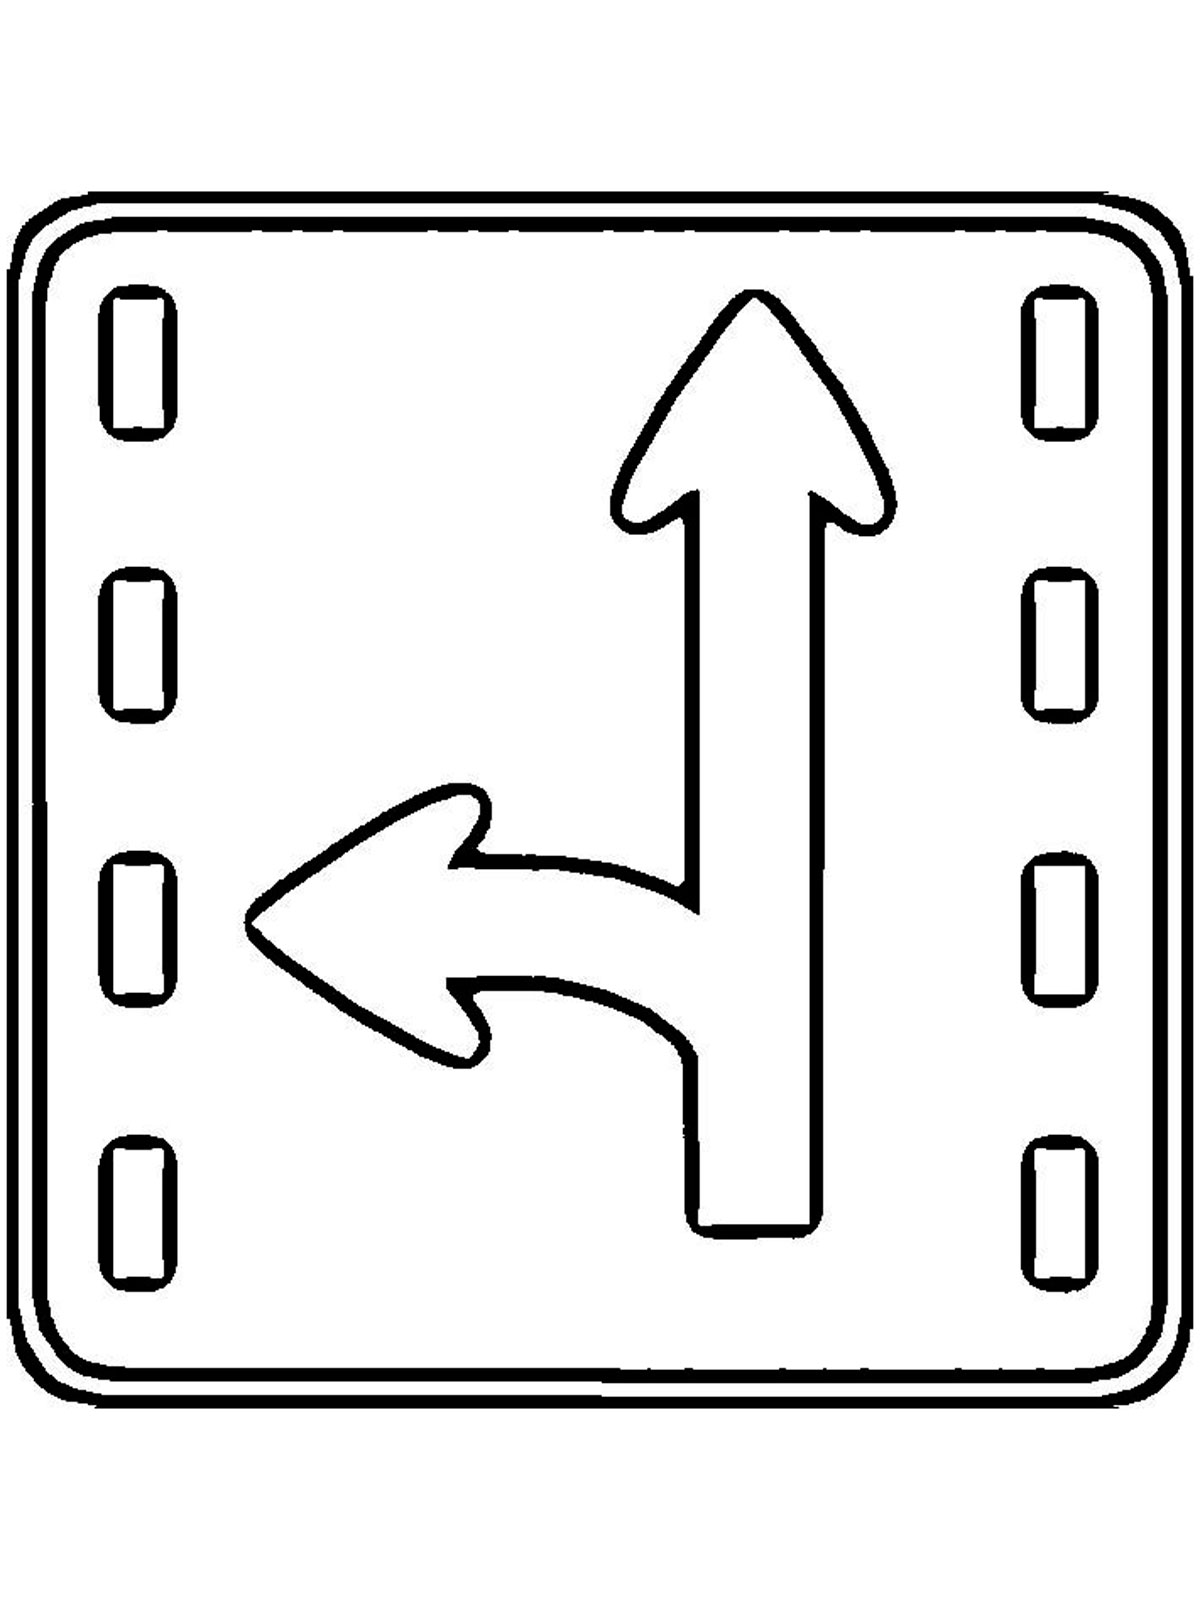 Road Sign Coloring Pages Perfect Christian Road Signs Coloring